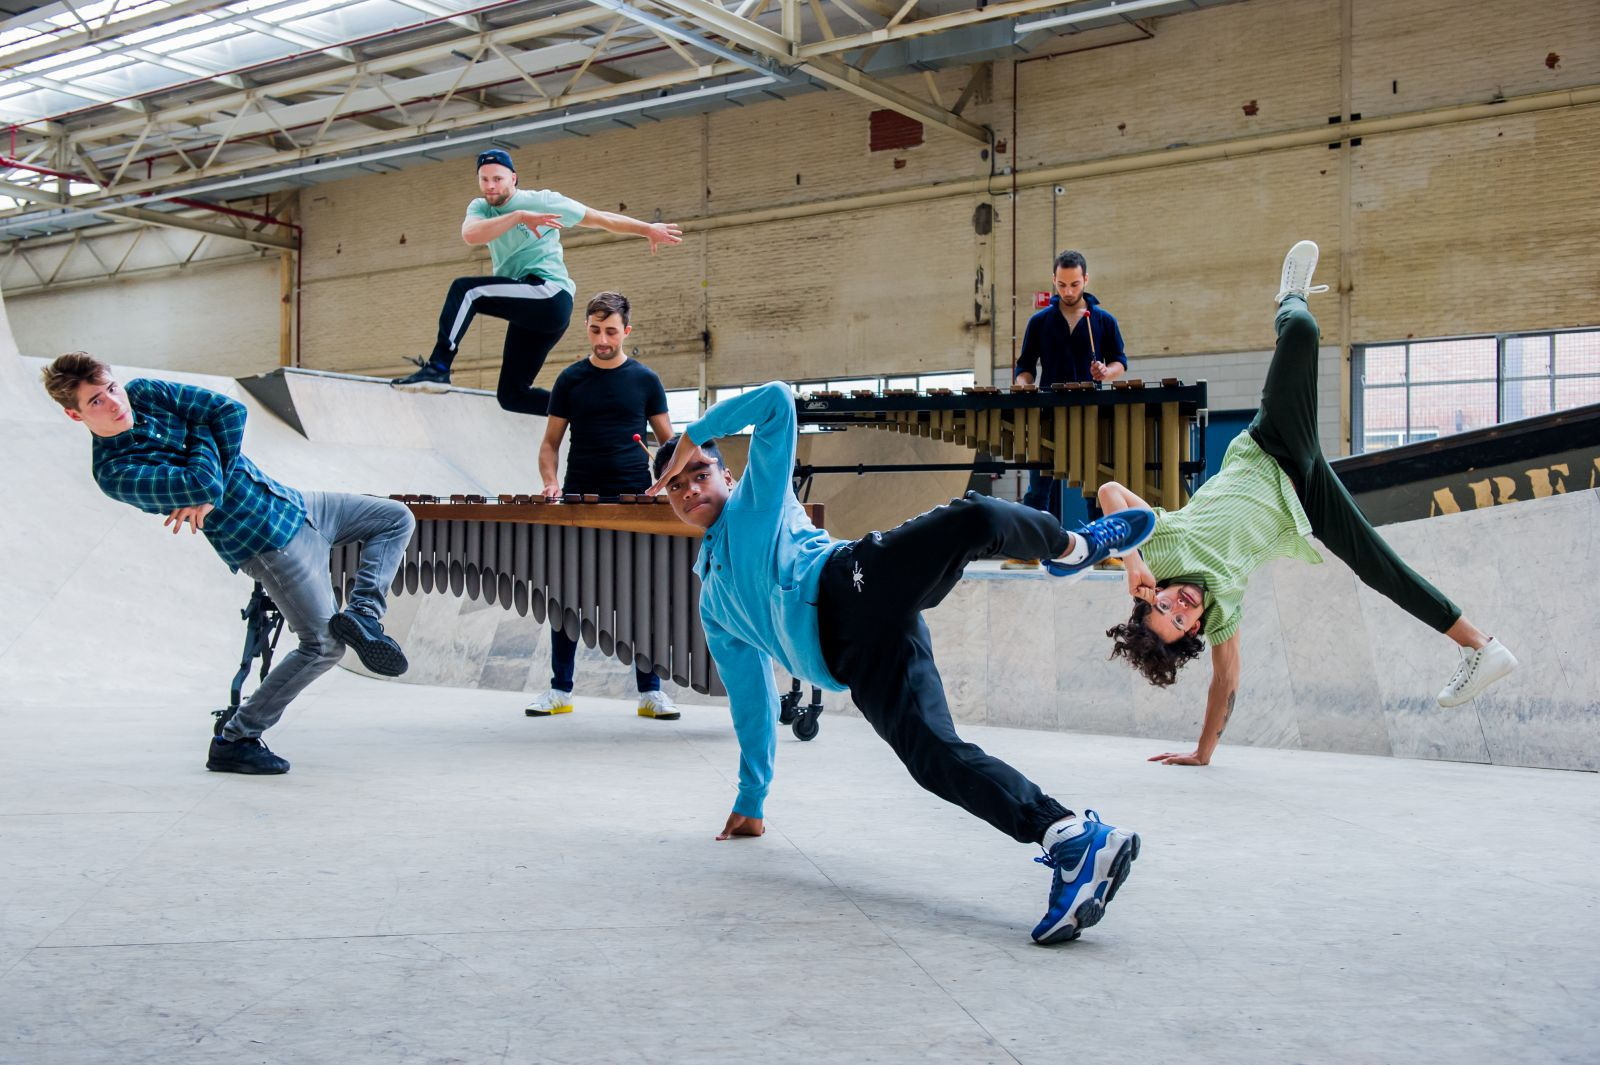 Tromp Emoves breakdance - Fotograaf: Claudia Hansen